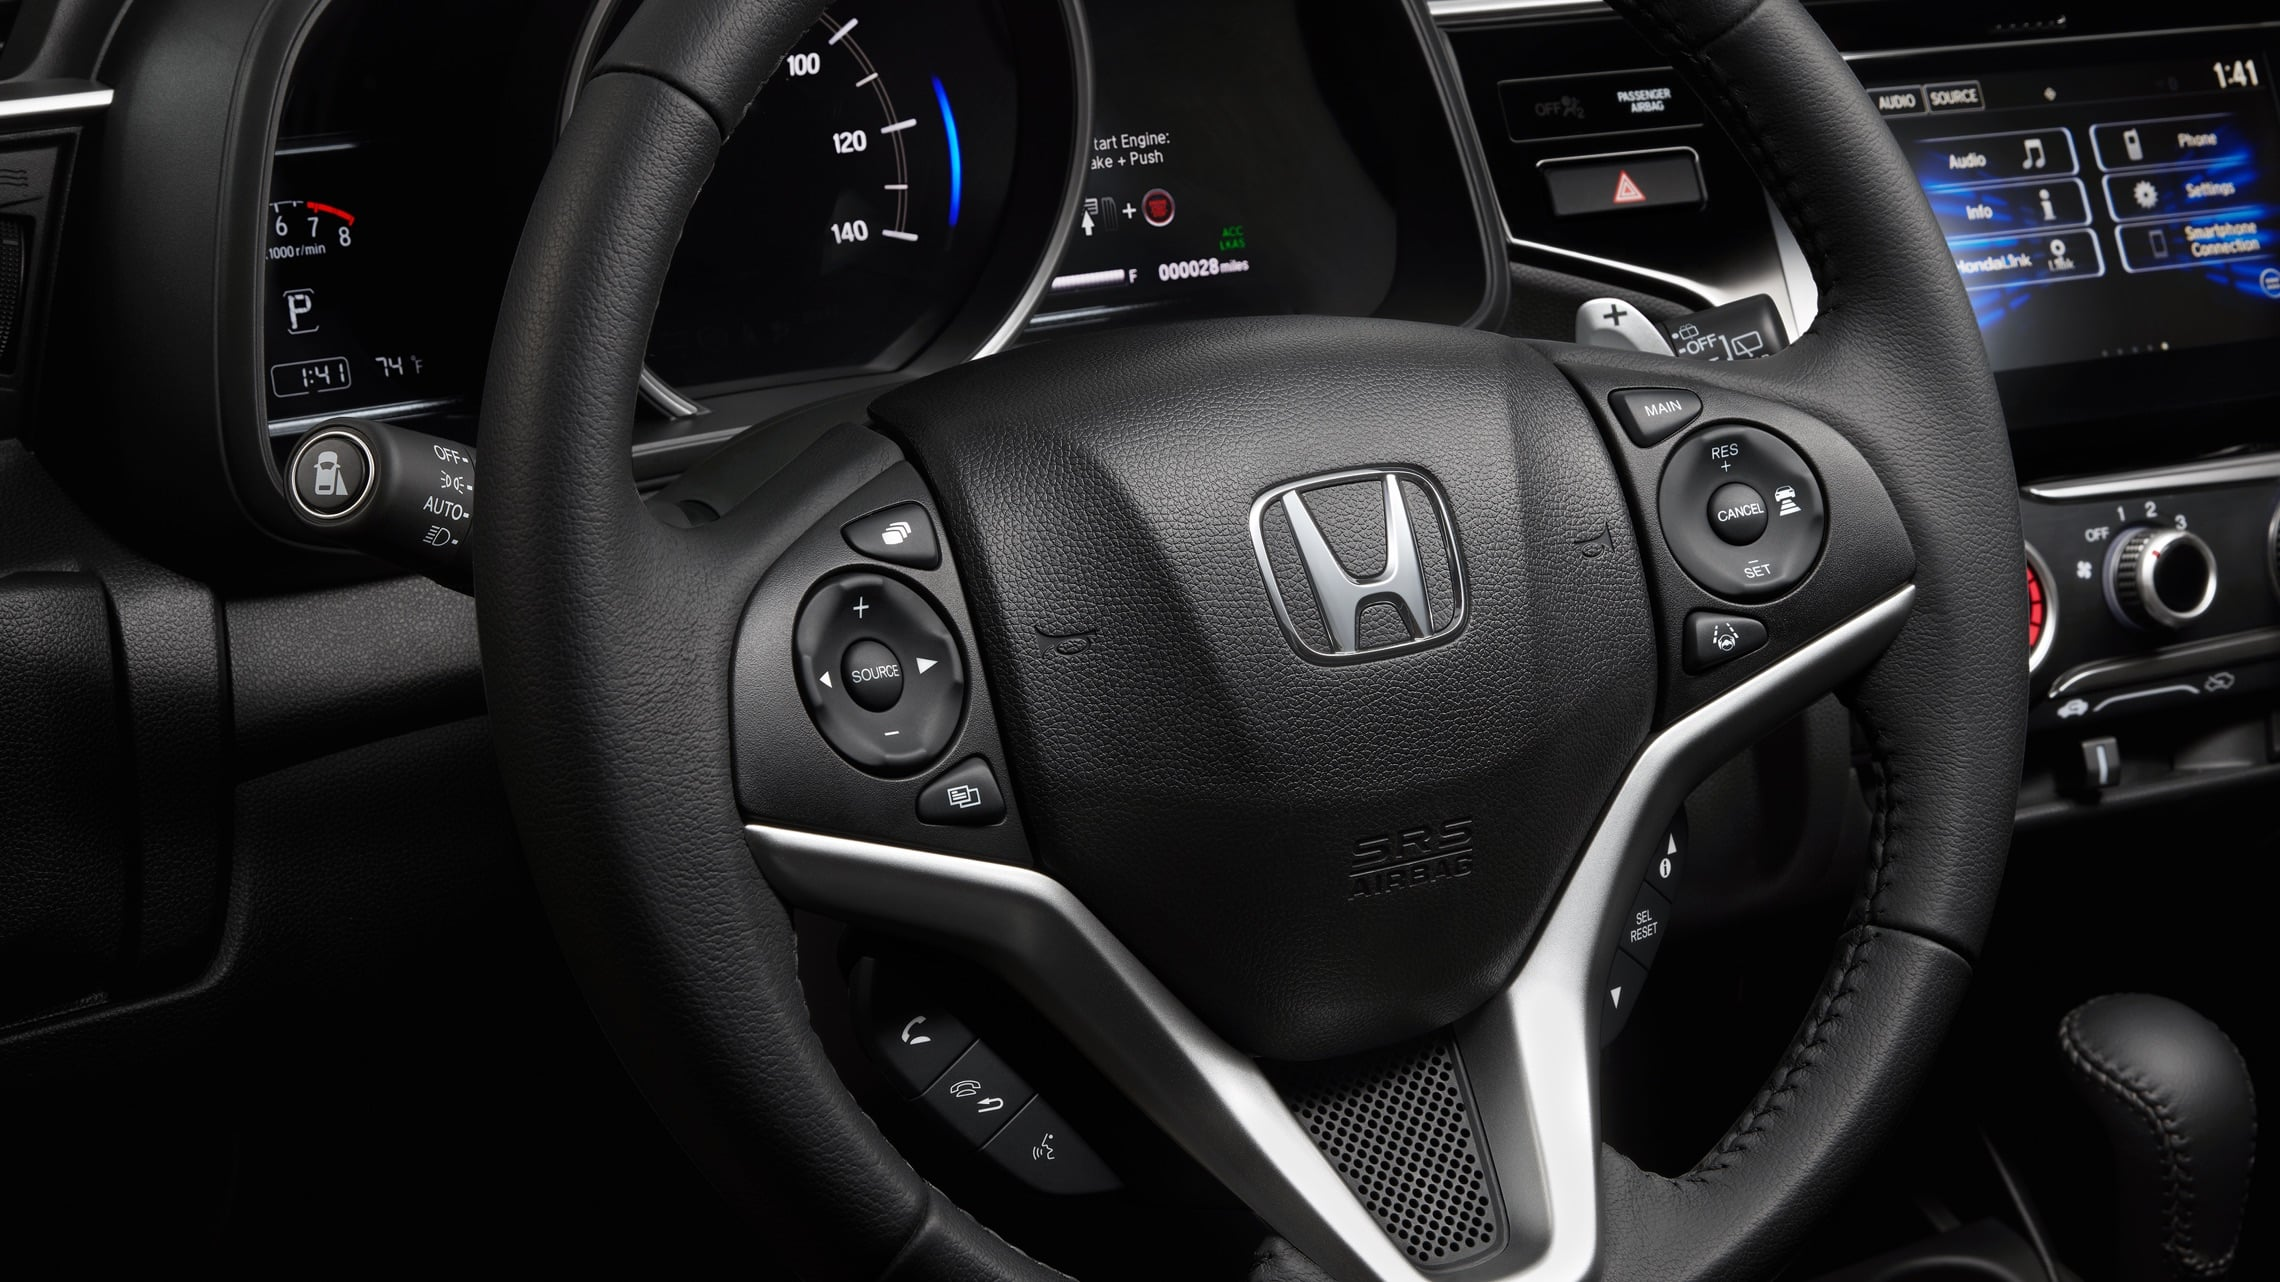 Steering wheel-mounted control detail on the 2020 Honda Fit EX-L.